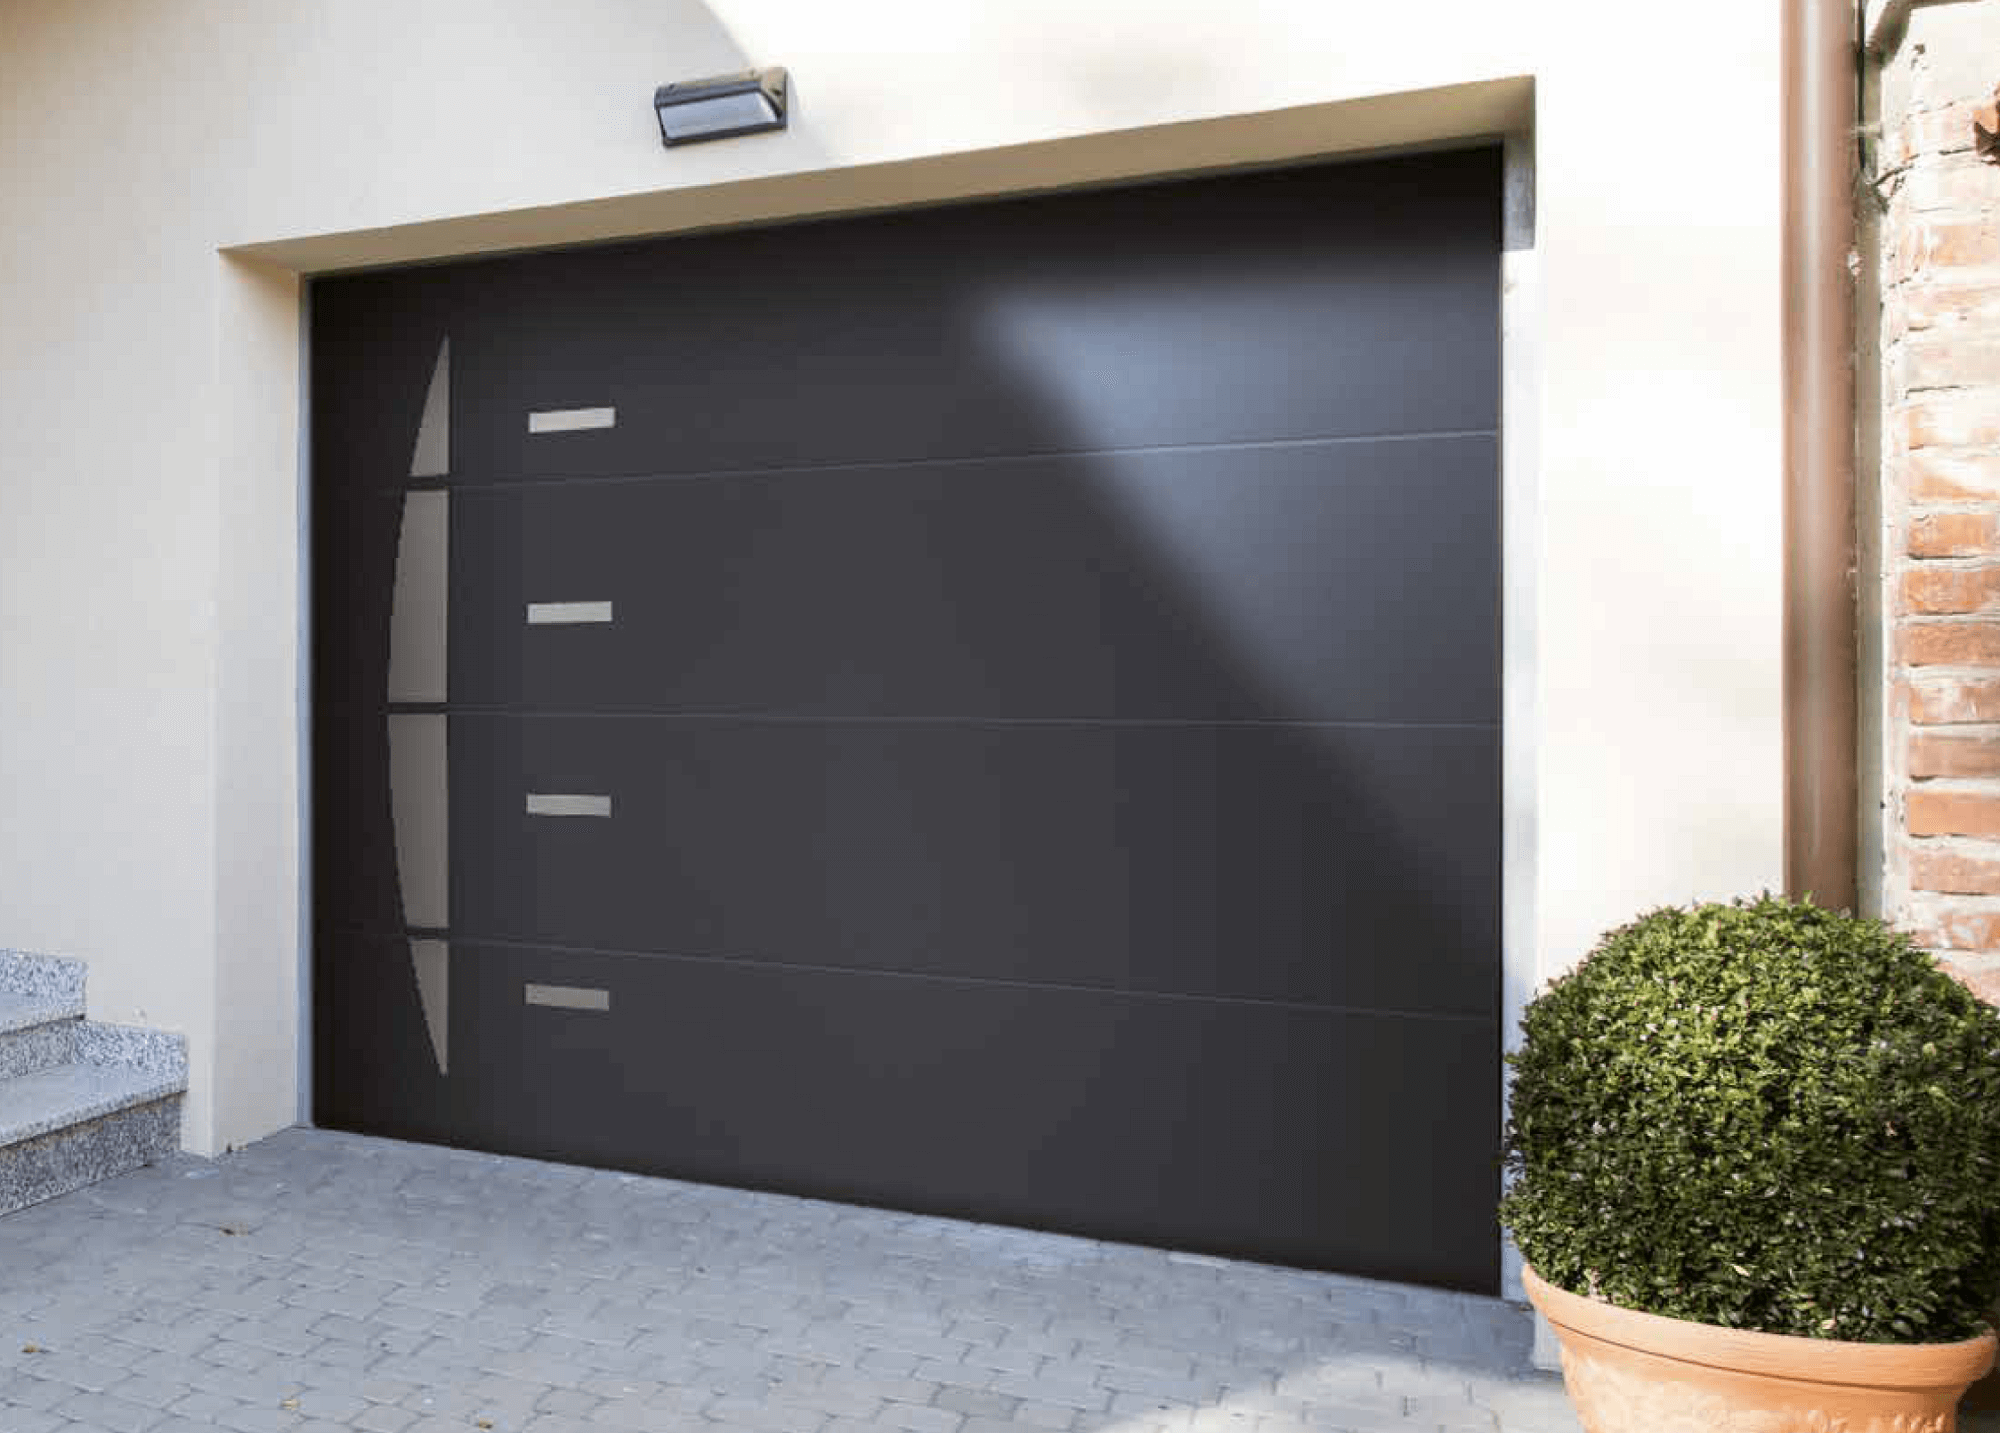 Porte de garage motoris e portes de garage sur mesure for Porte de garage normstahl prix